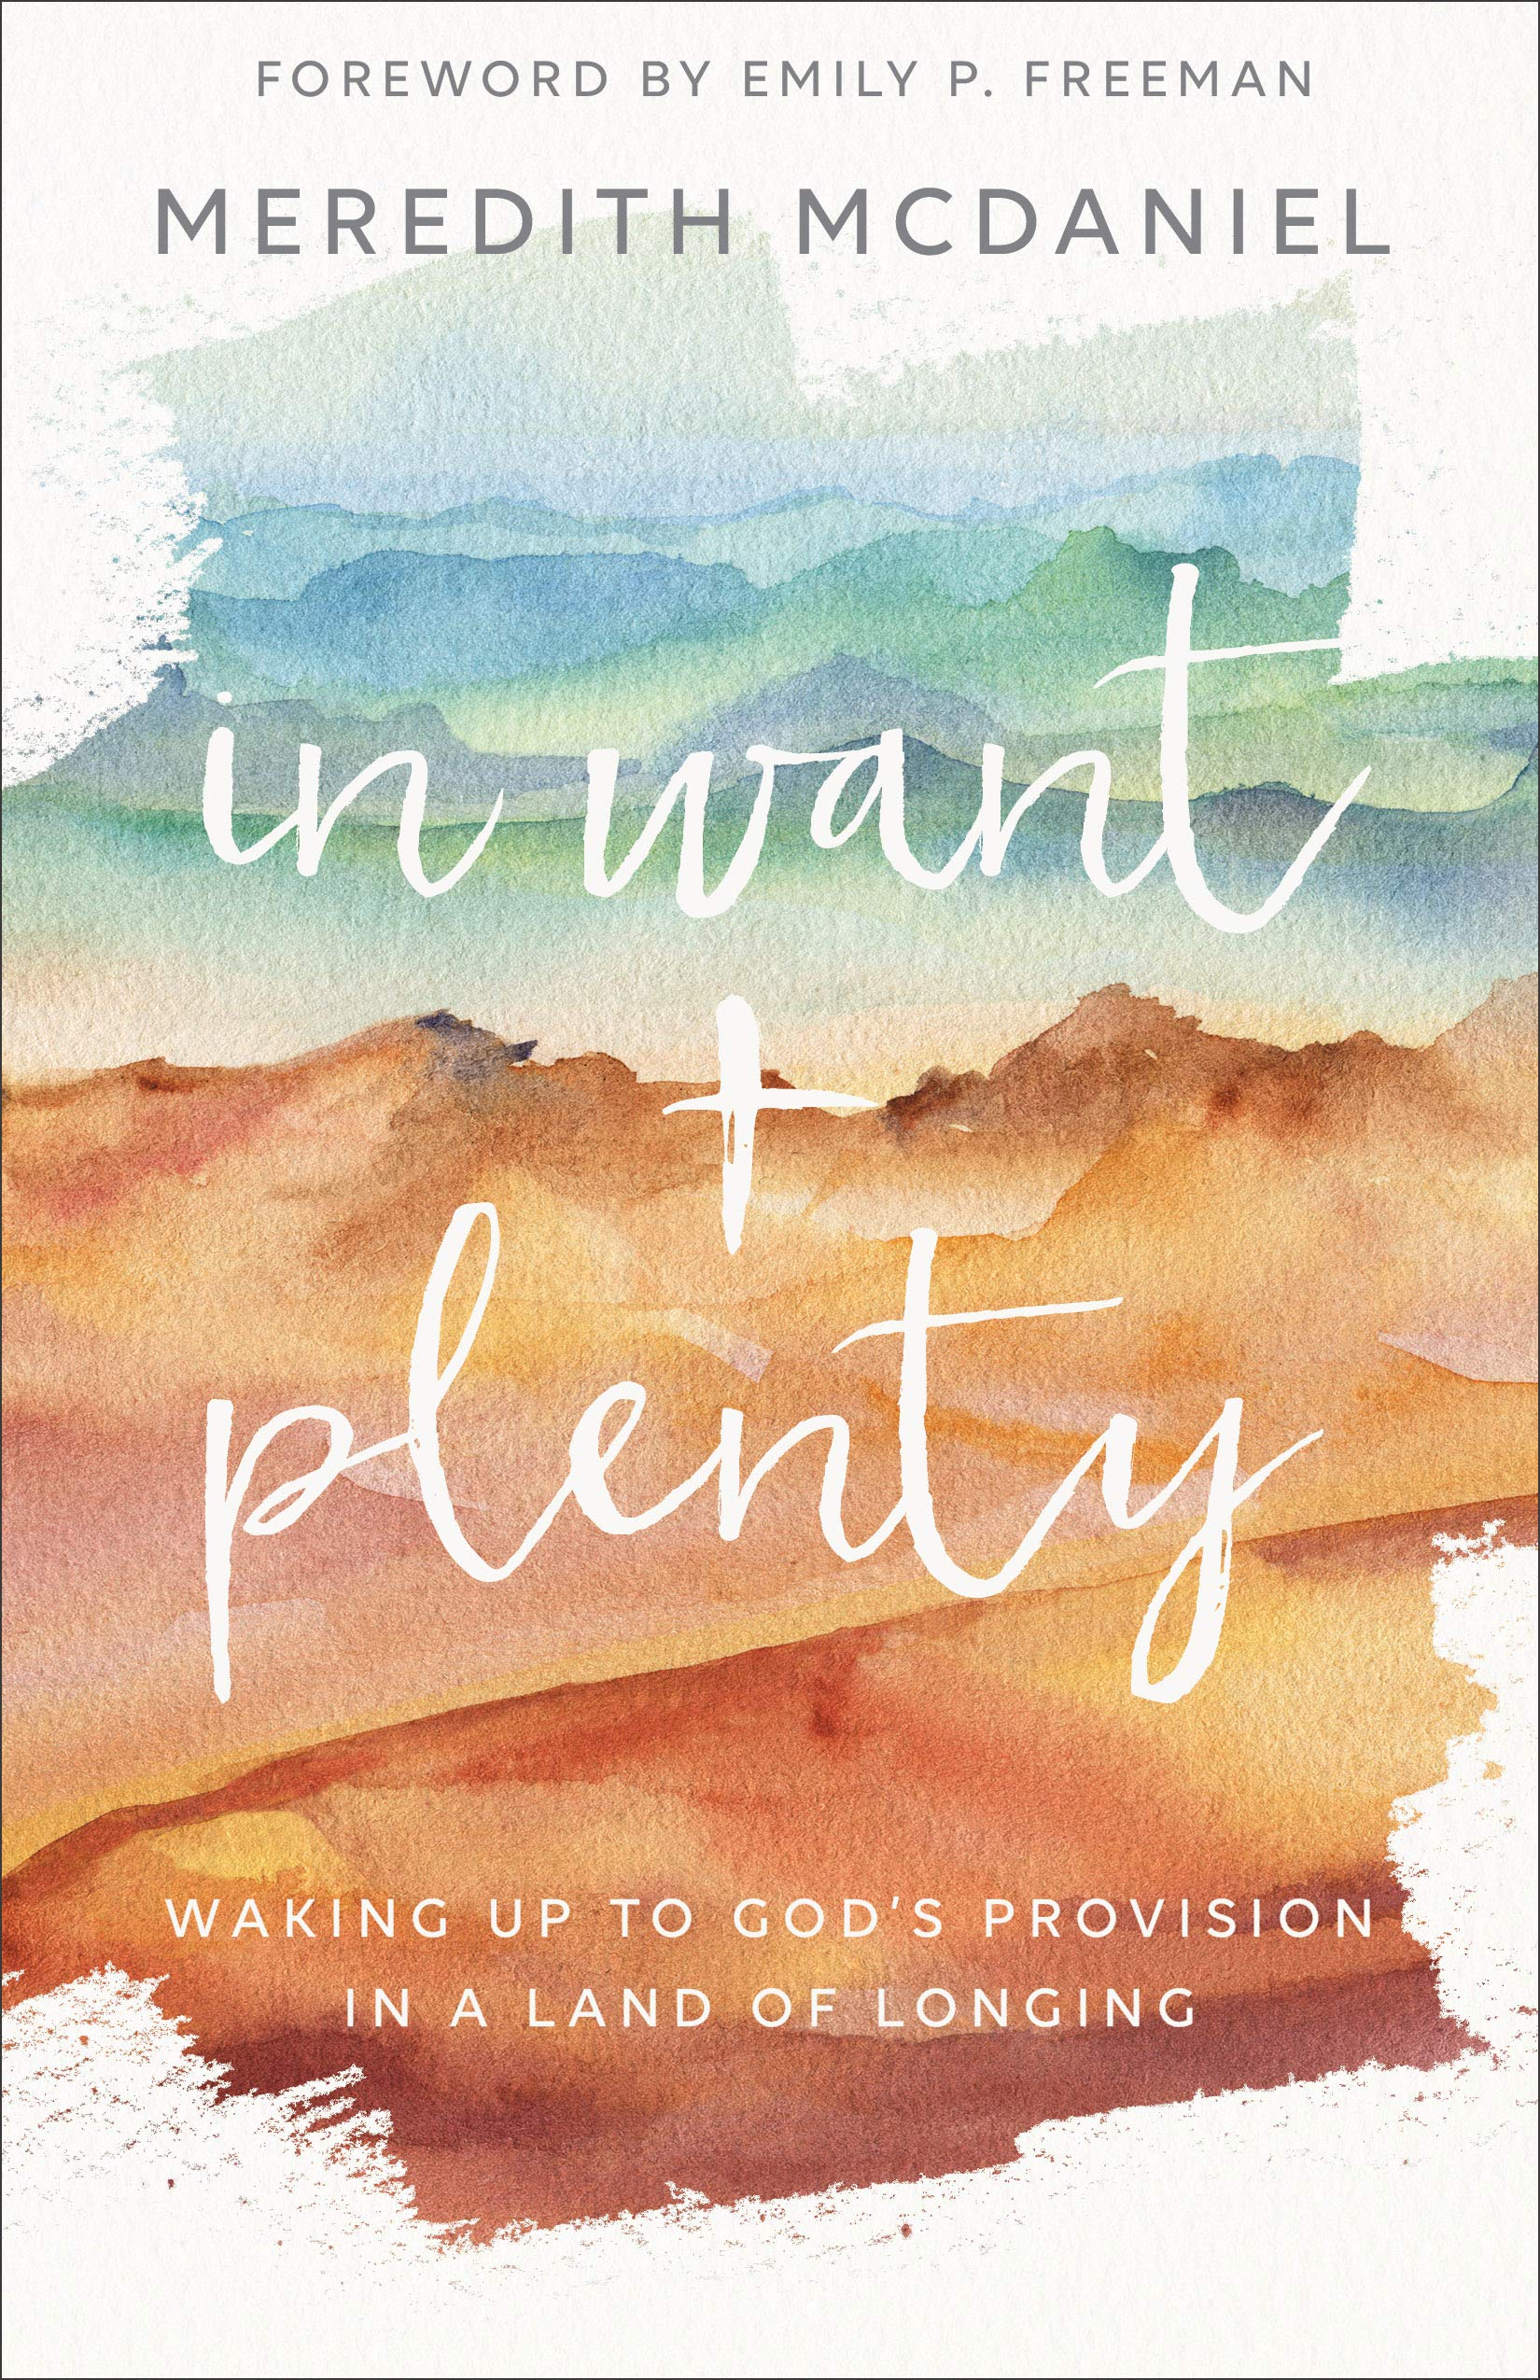 In Want + Plenty: Waking Up to God's Provision in a Land of Longing by Meredith McDaniel {A Book Review}